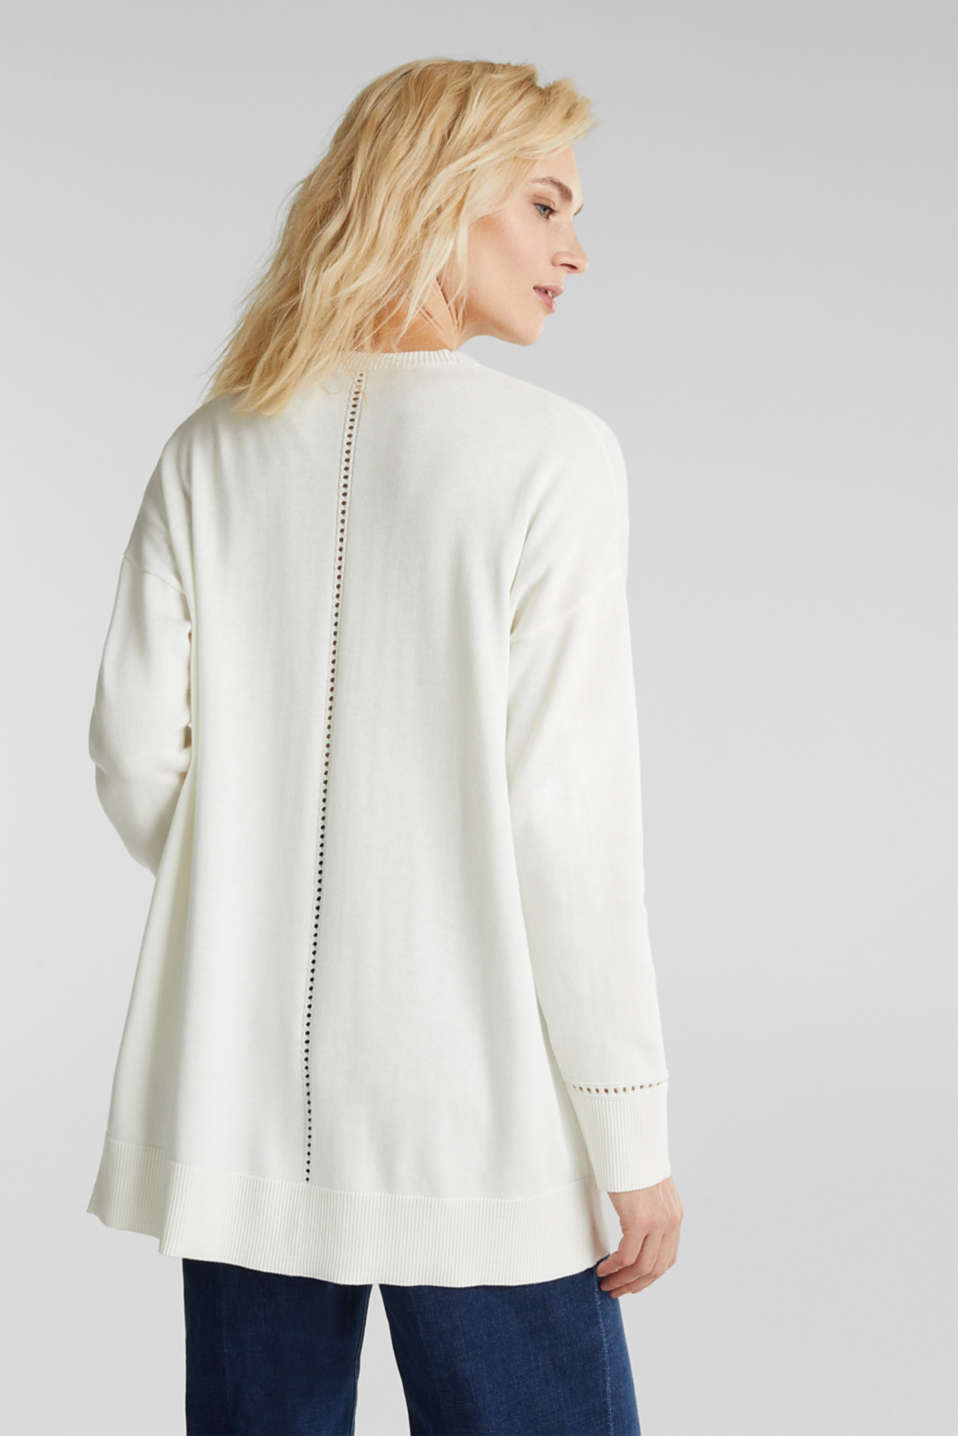 Cardigan with open-work pattern details, OFF WHITE, detail image number 3